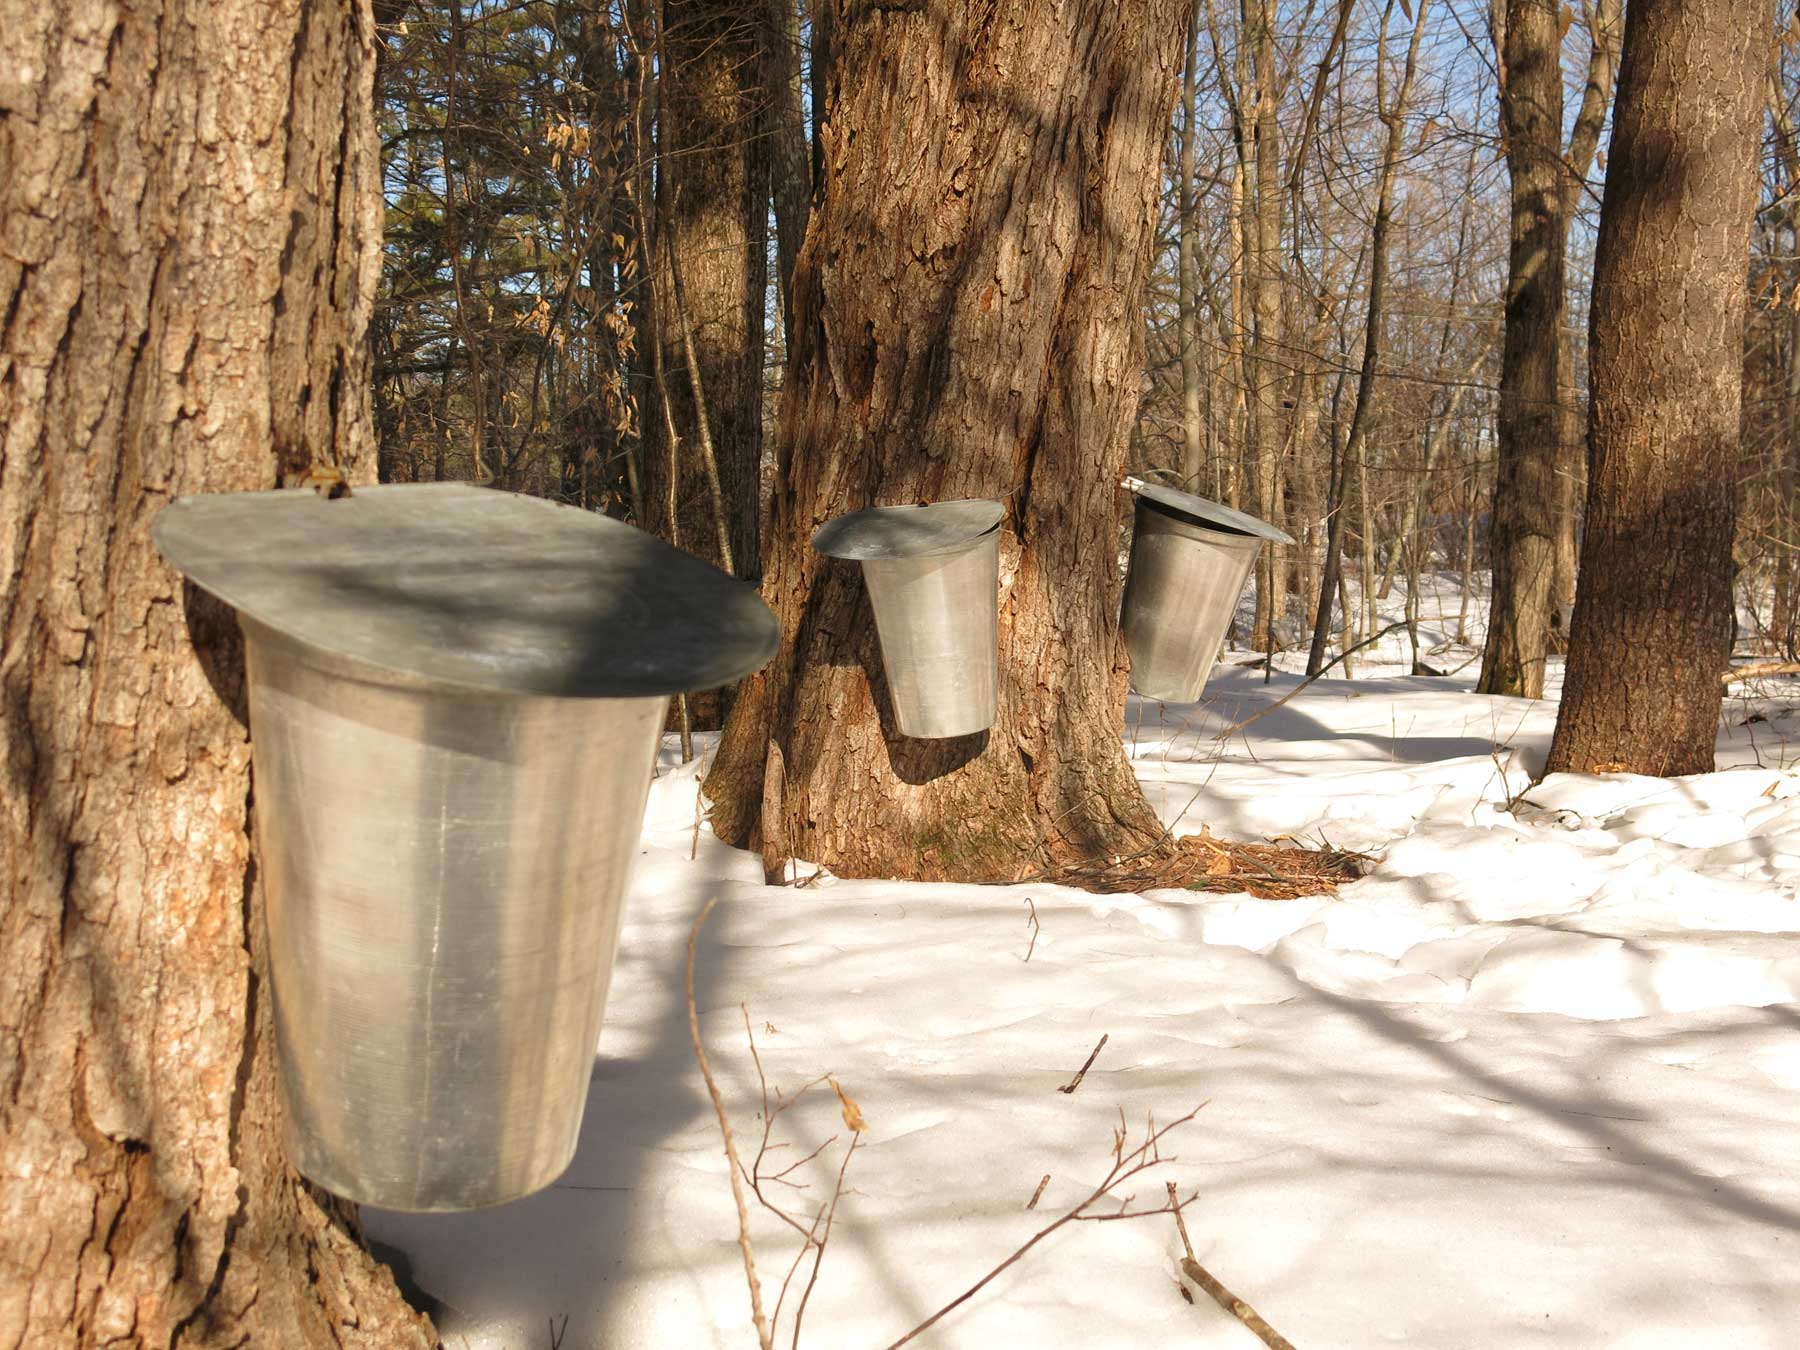 Traditional maple syrup buckets